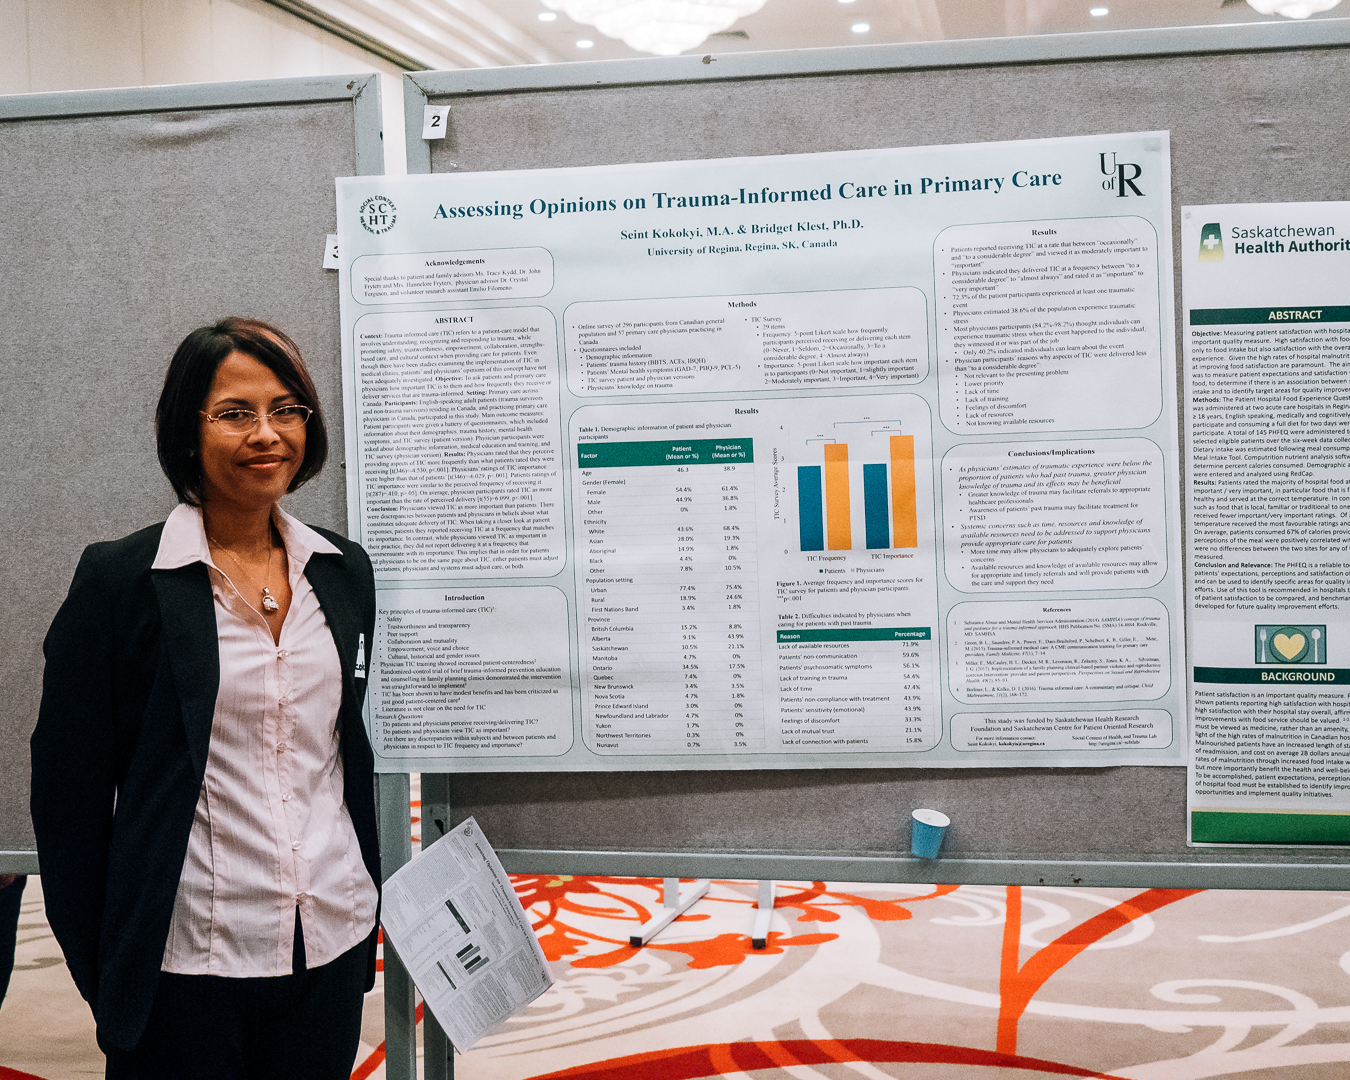 SCPOR trainee Seint Kokokyi at the Research & Performance Support Department of the Saskatchewan Health Authority - Regina Area 12th Annual Research Showcase. Seint's supervisor is the UofR's Dr. Bridget Klest. (Photo by: Chris Plishka)